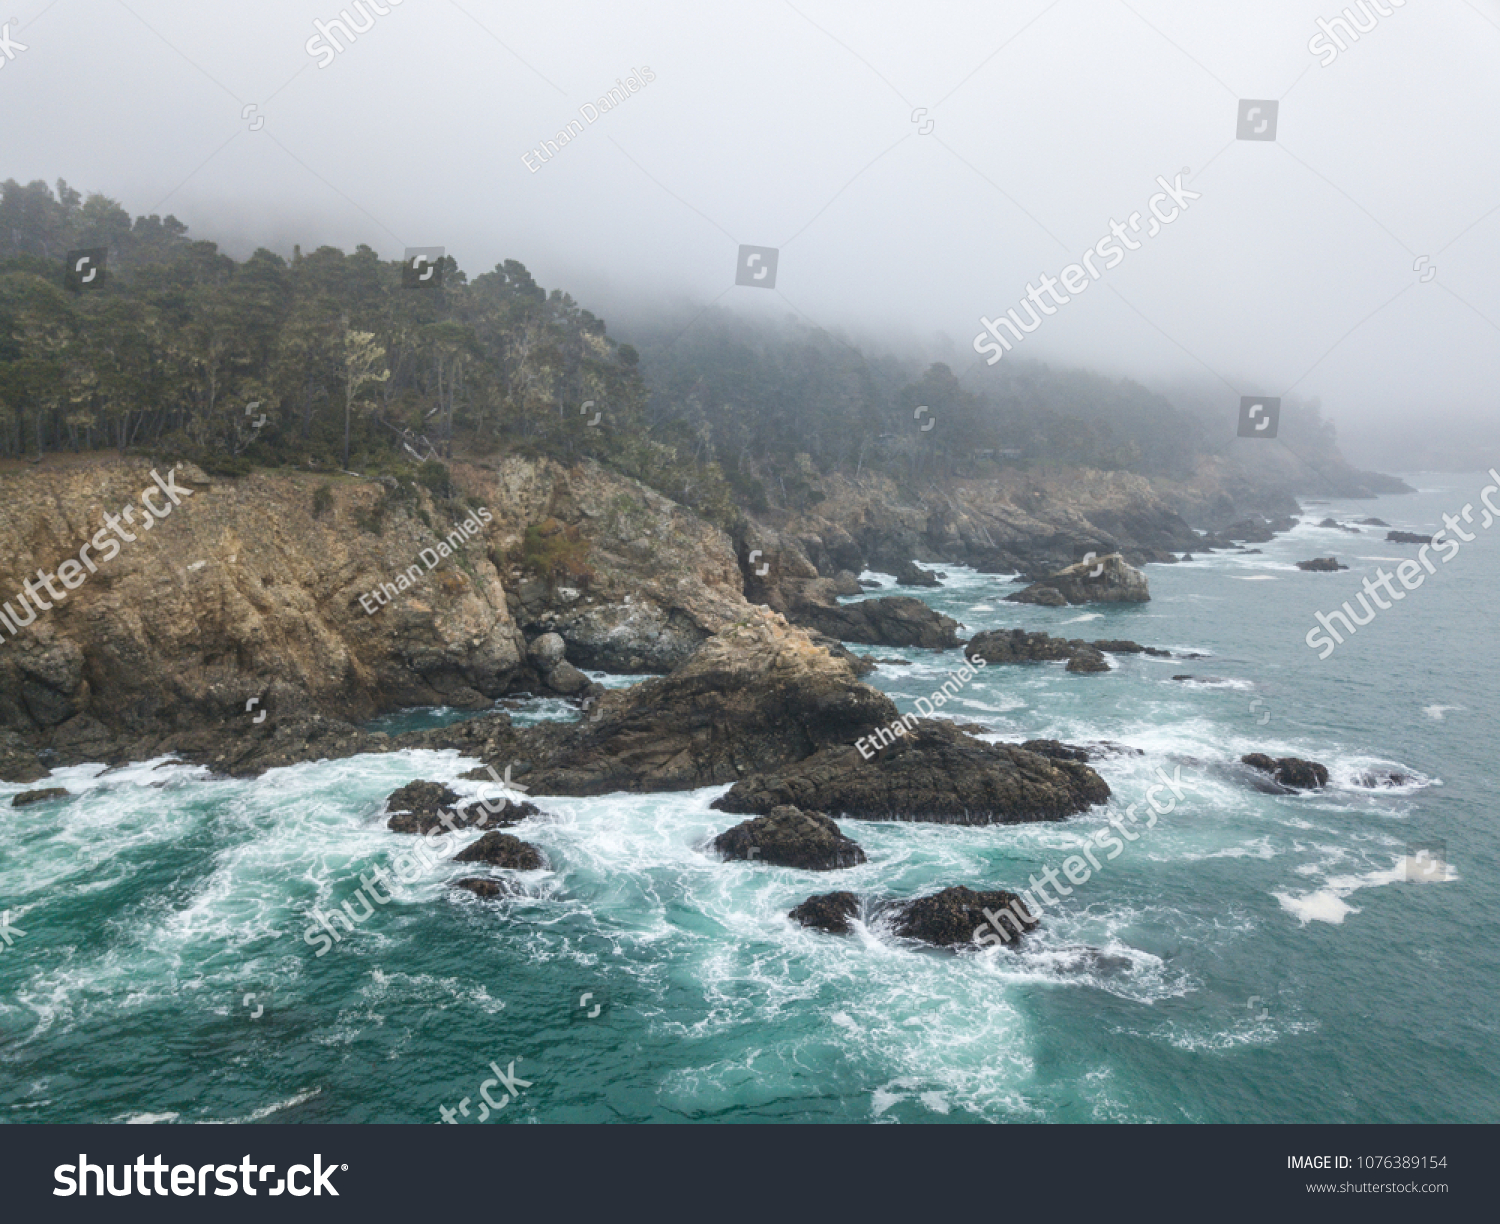 The cold waters of the Pacific Ocean wash against the rocky northern California coastline in Sonoma. This scenic region, north of San Francisco, is accessible via the famous highway one. #1076389154